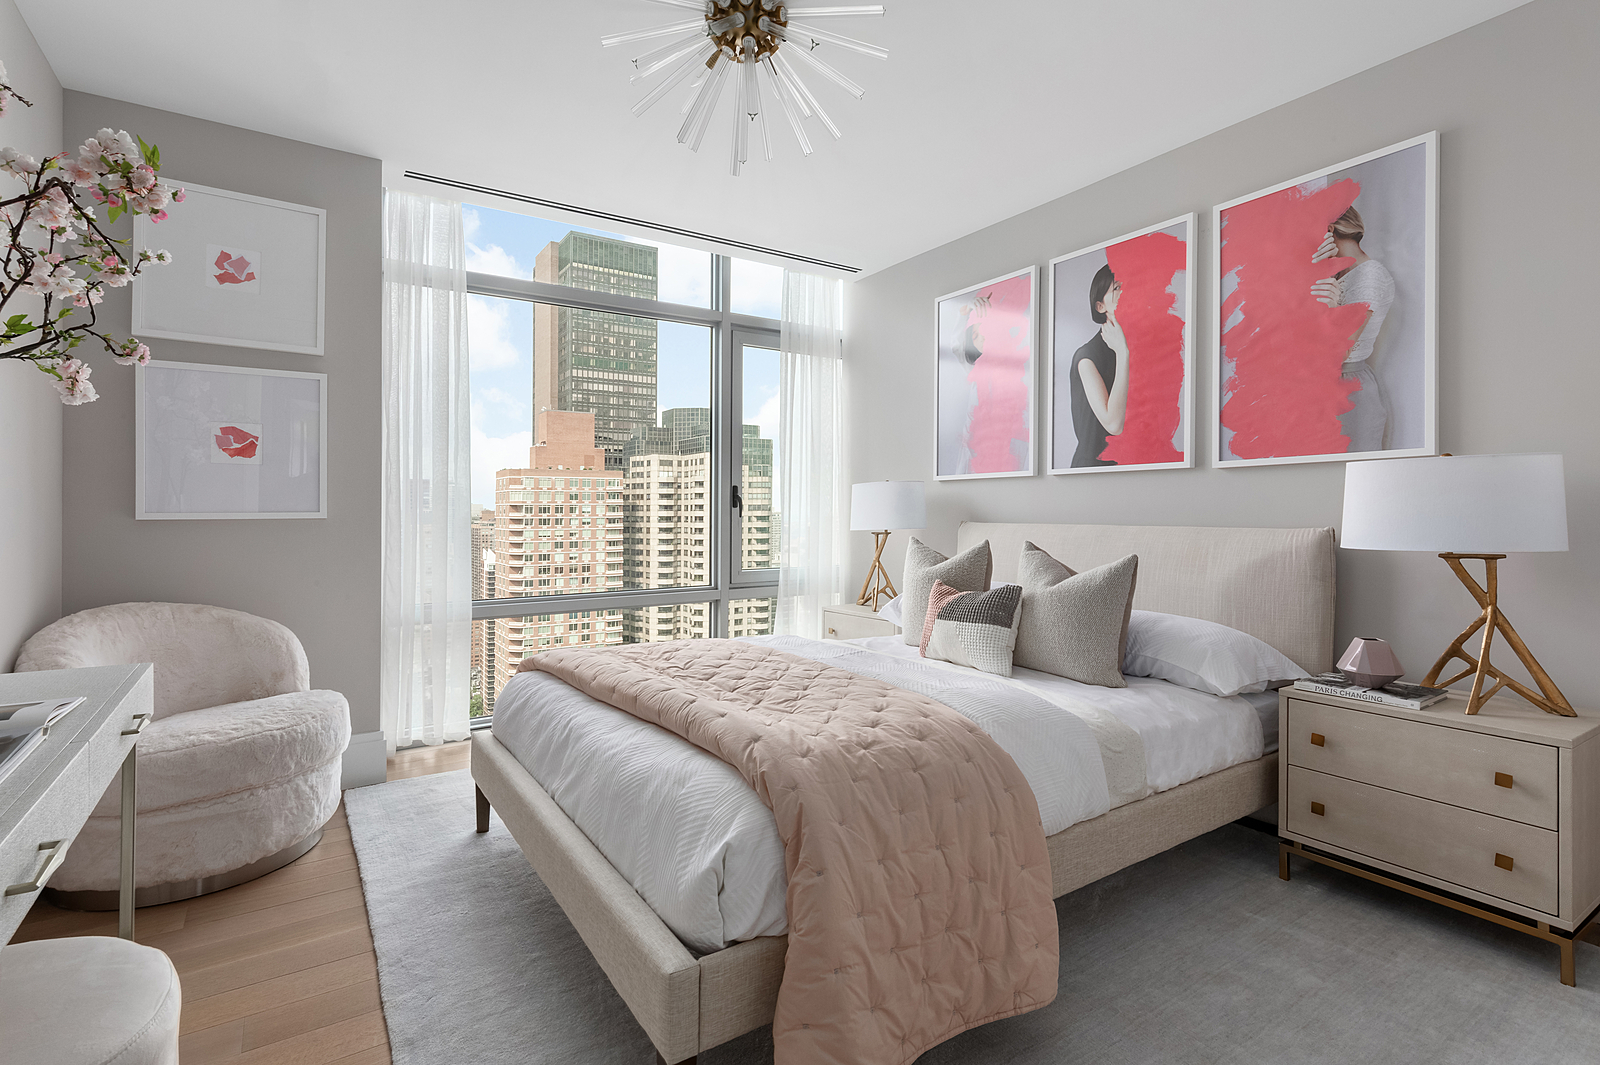 219East44thStreetPH-MidtownNewYork_Aaron_Ross_DouglasElliman_Photography_83045073_high_res